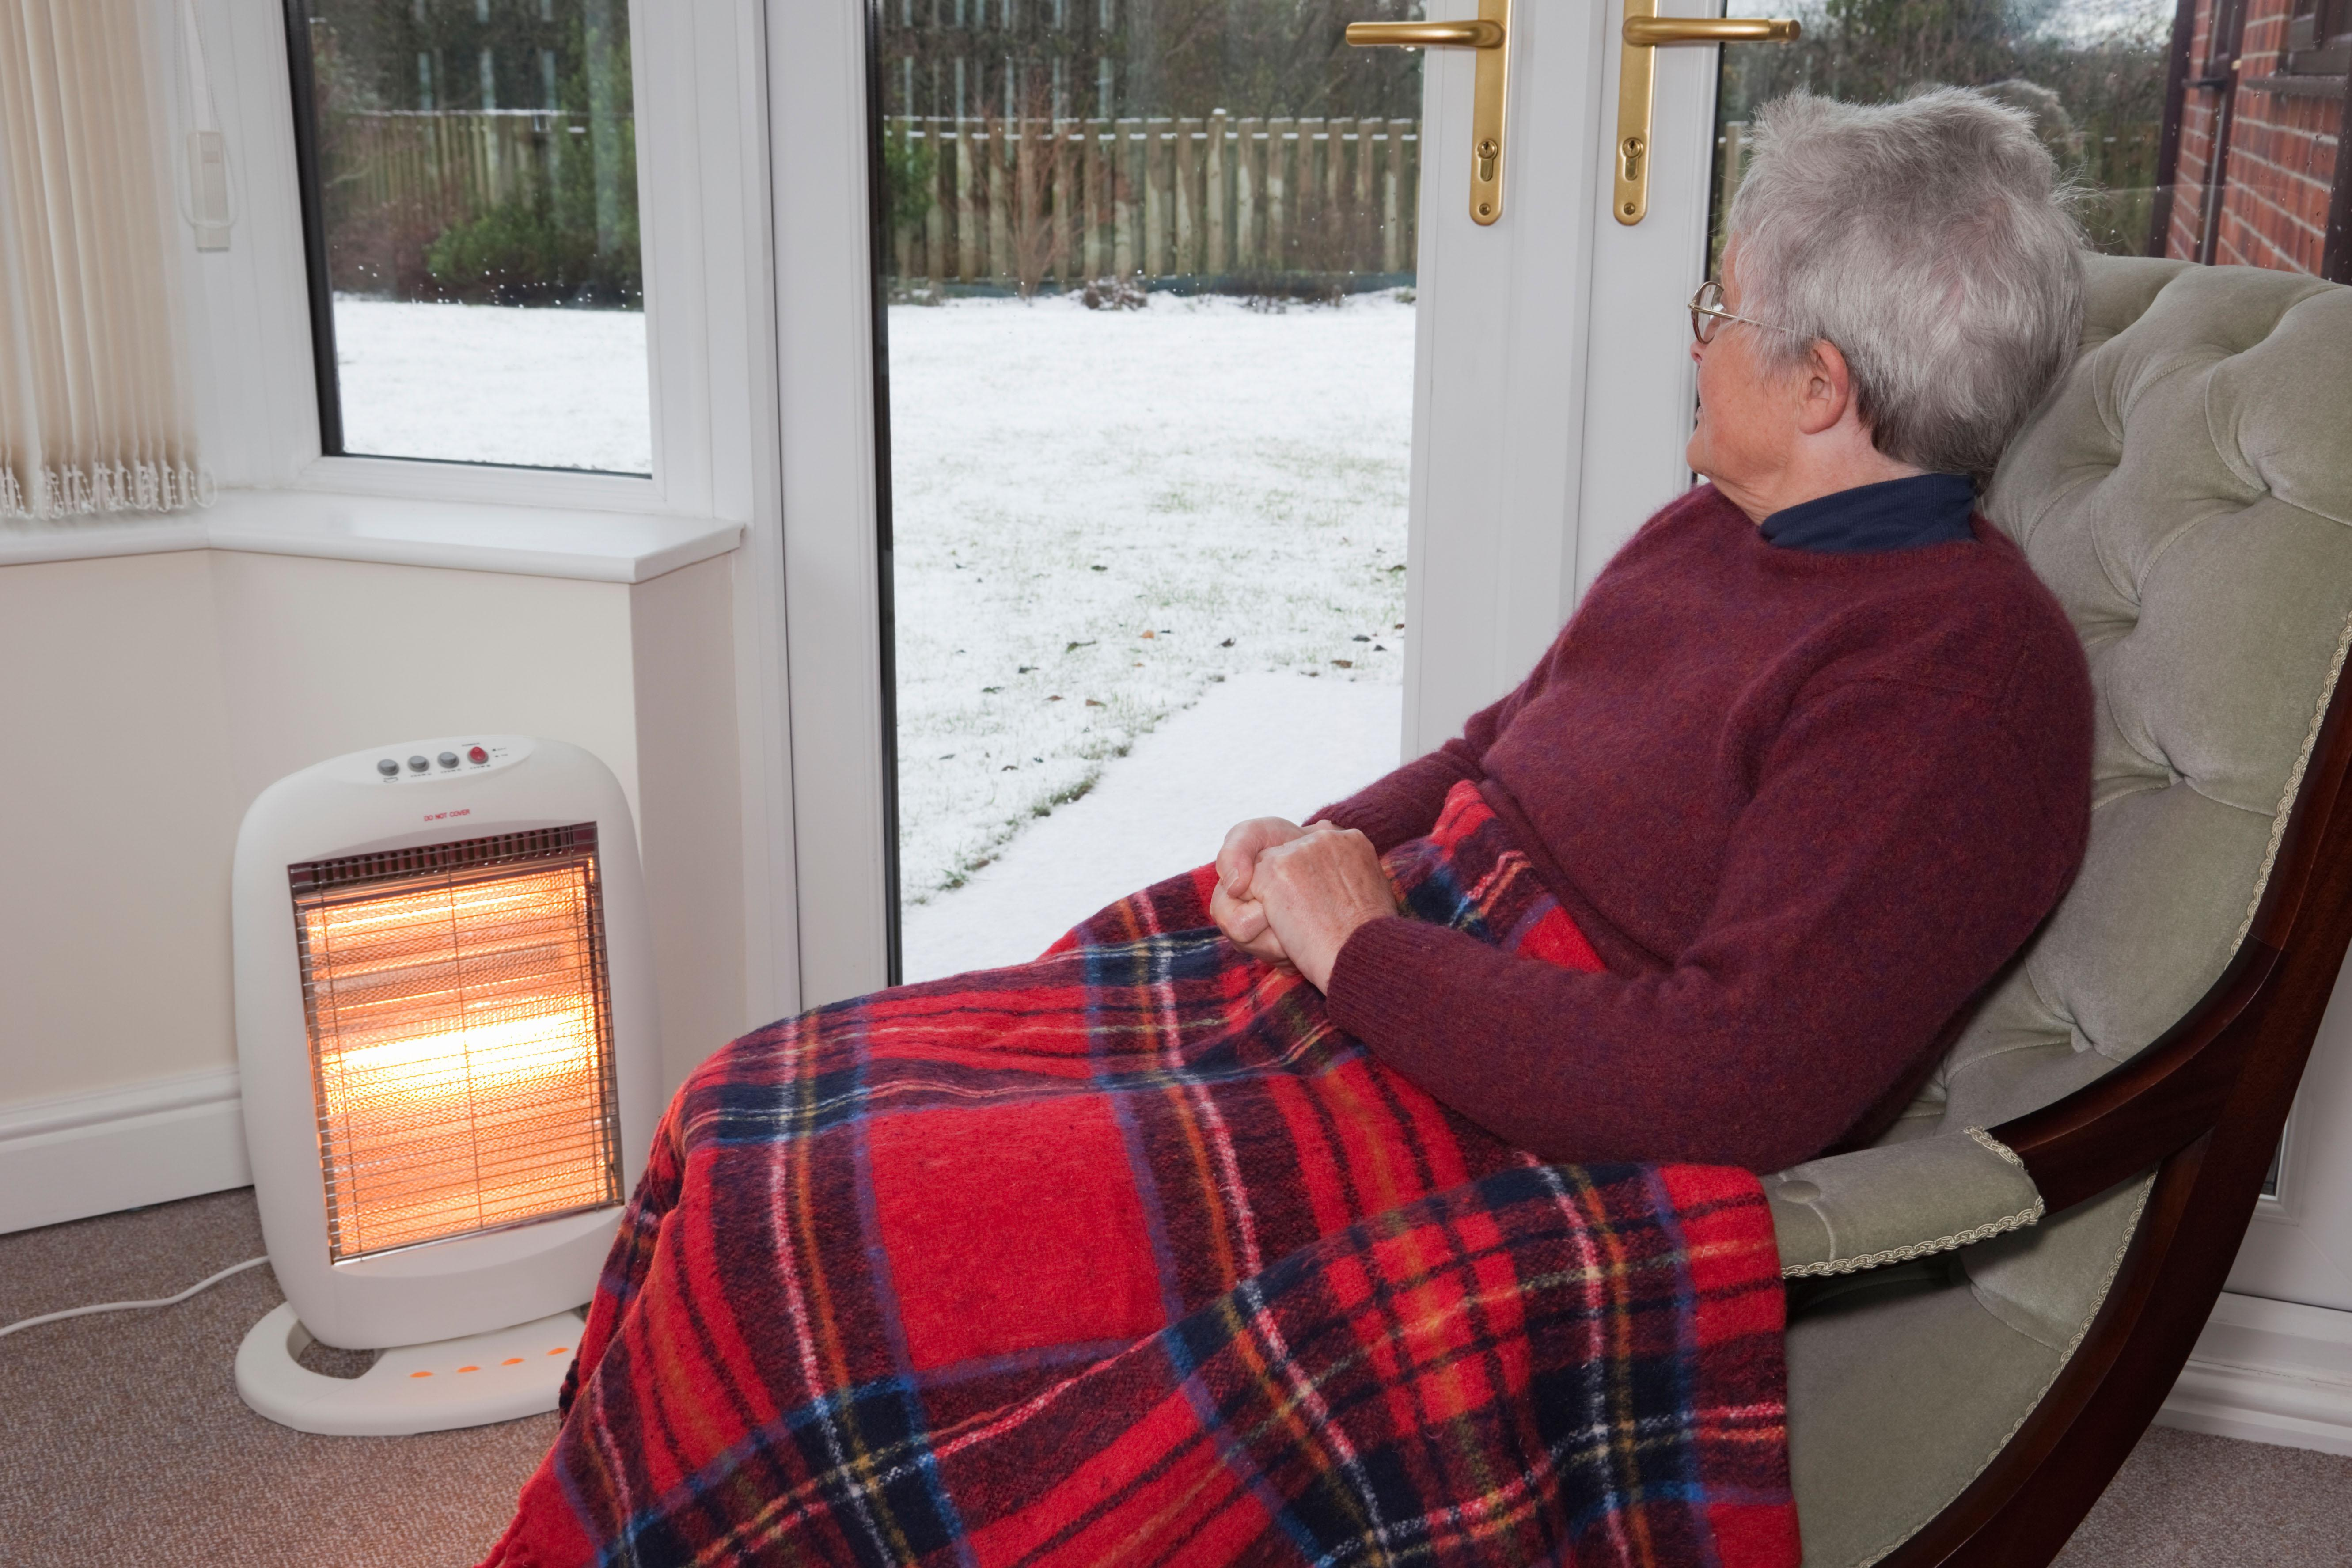 When the temperature drops some people need help keeping their homes warm